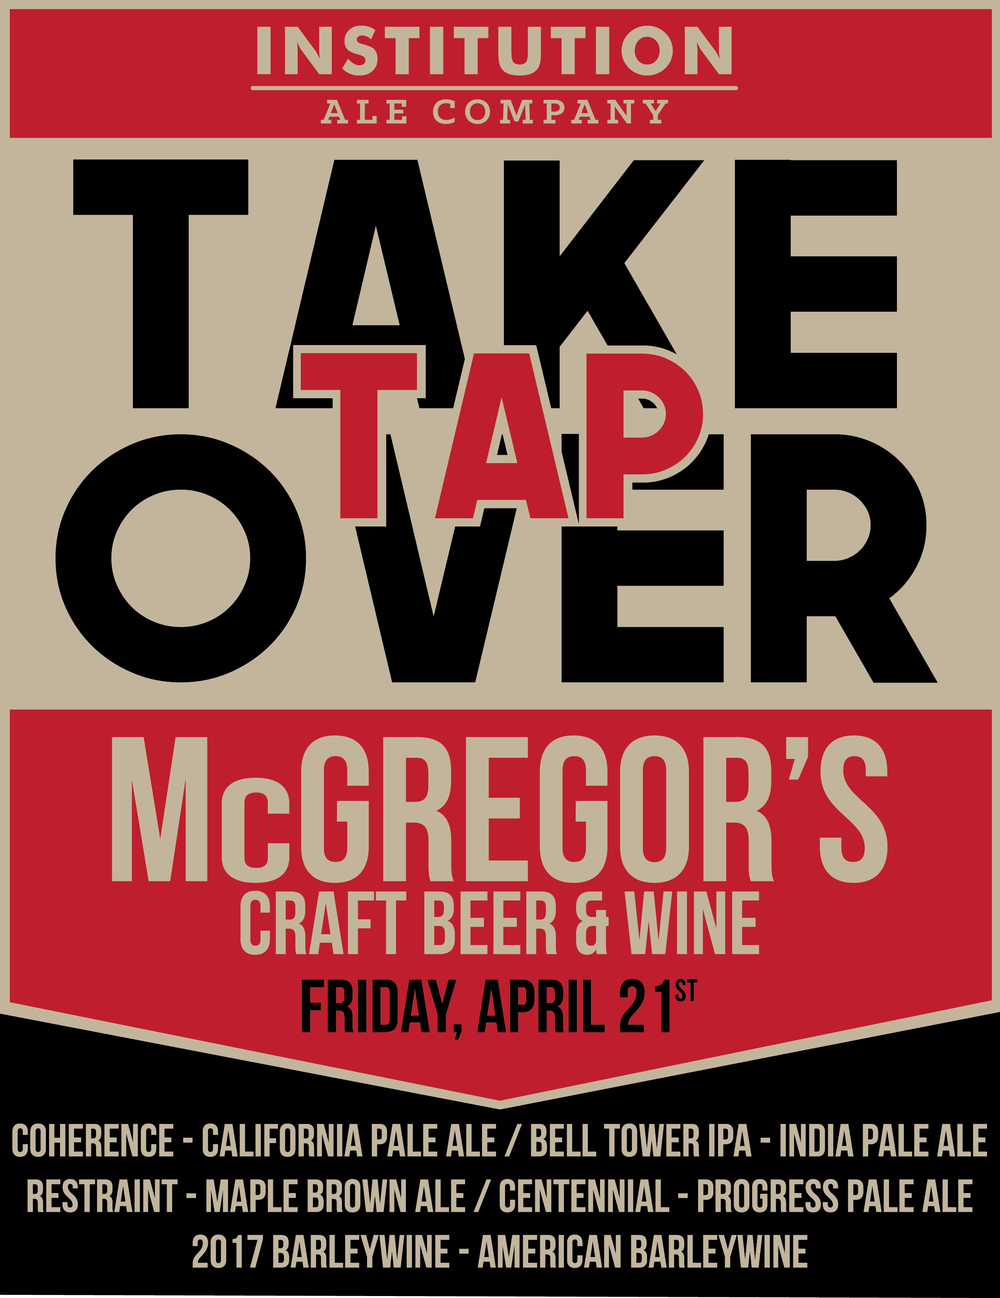 Mcgregors tap takeover-01.png